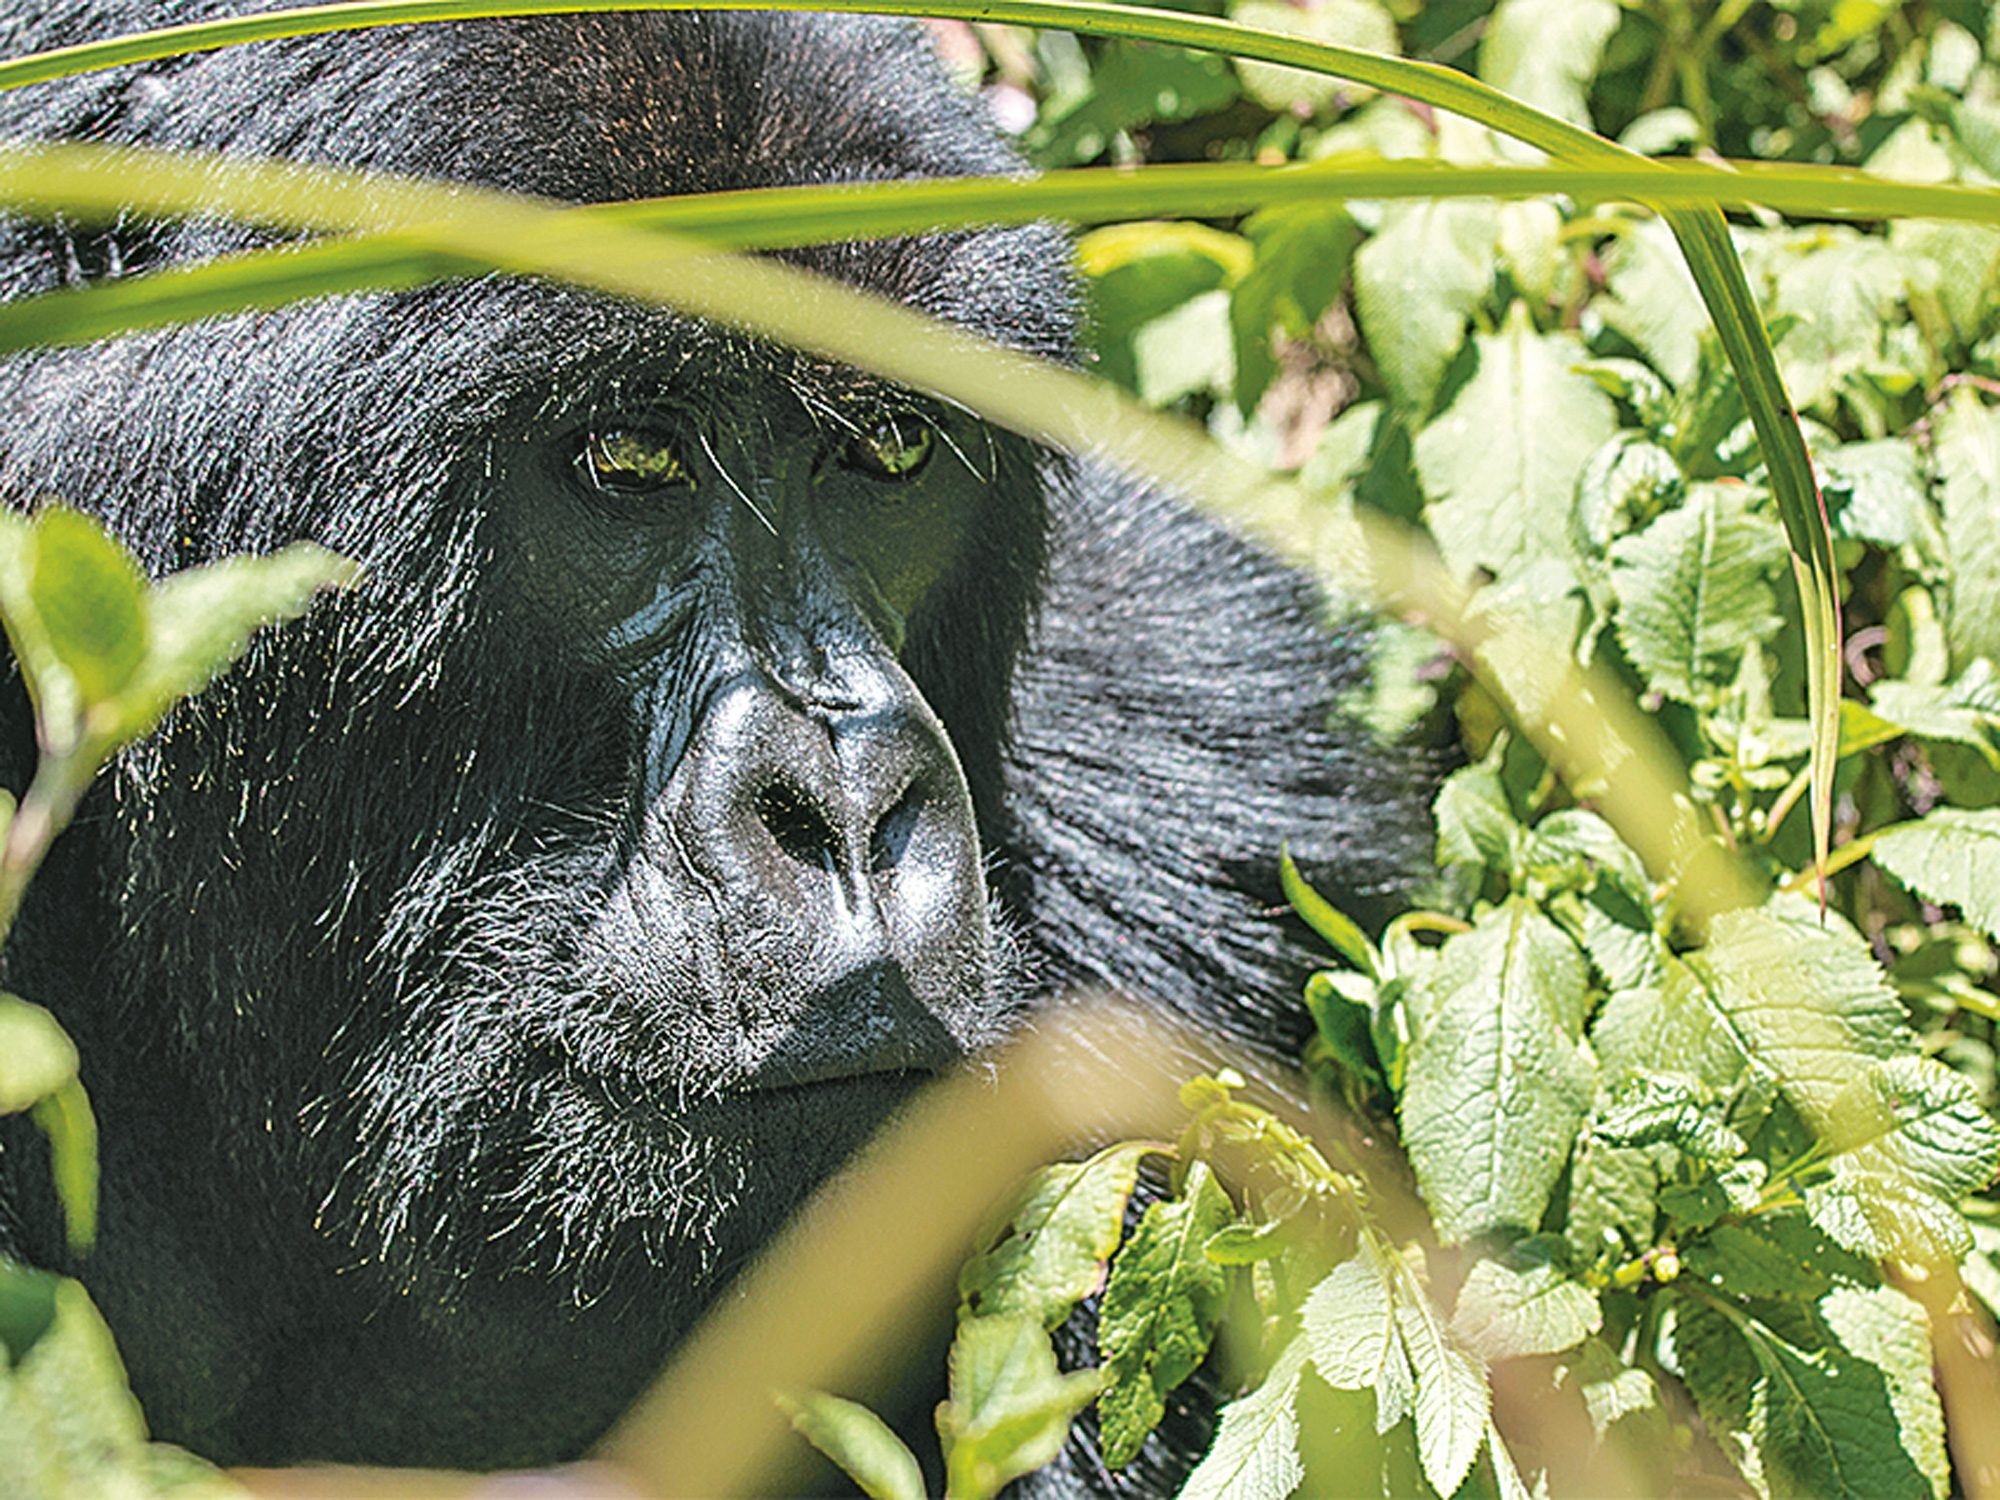 Among the Apes: Gorilla Trekking in Rwanda